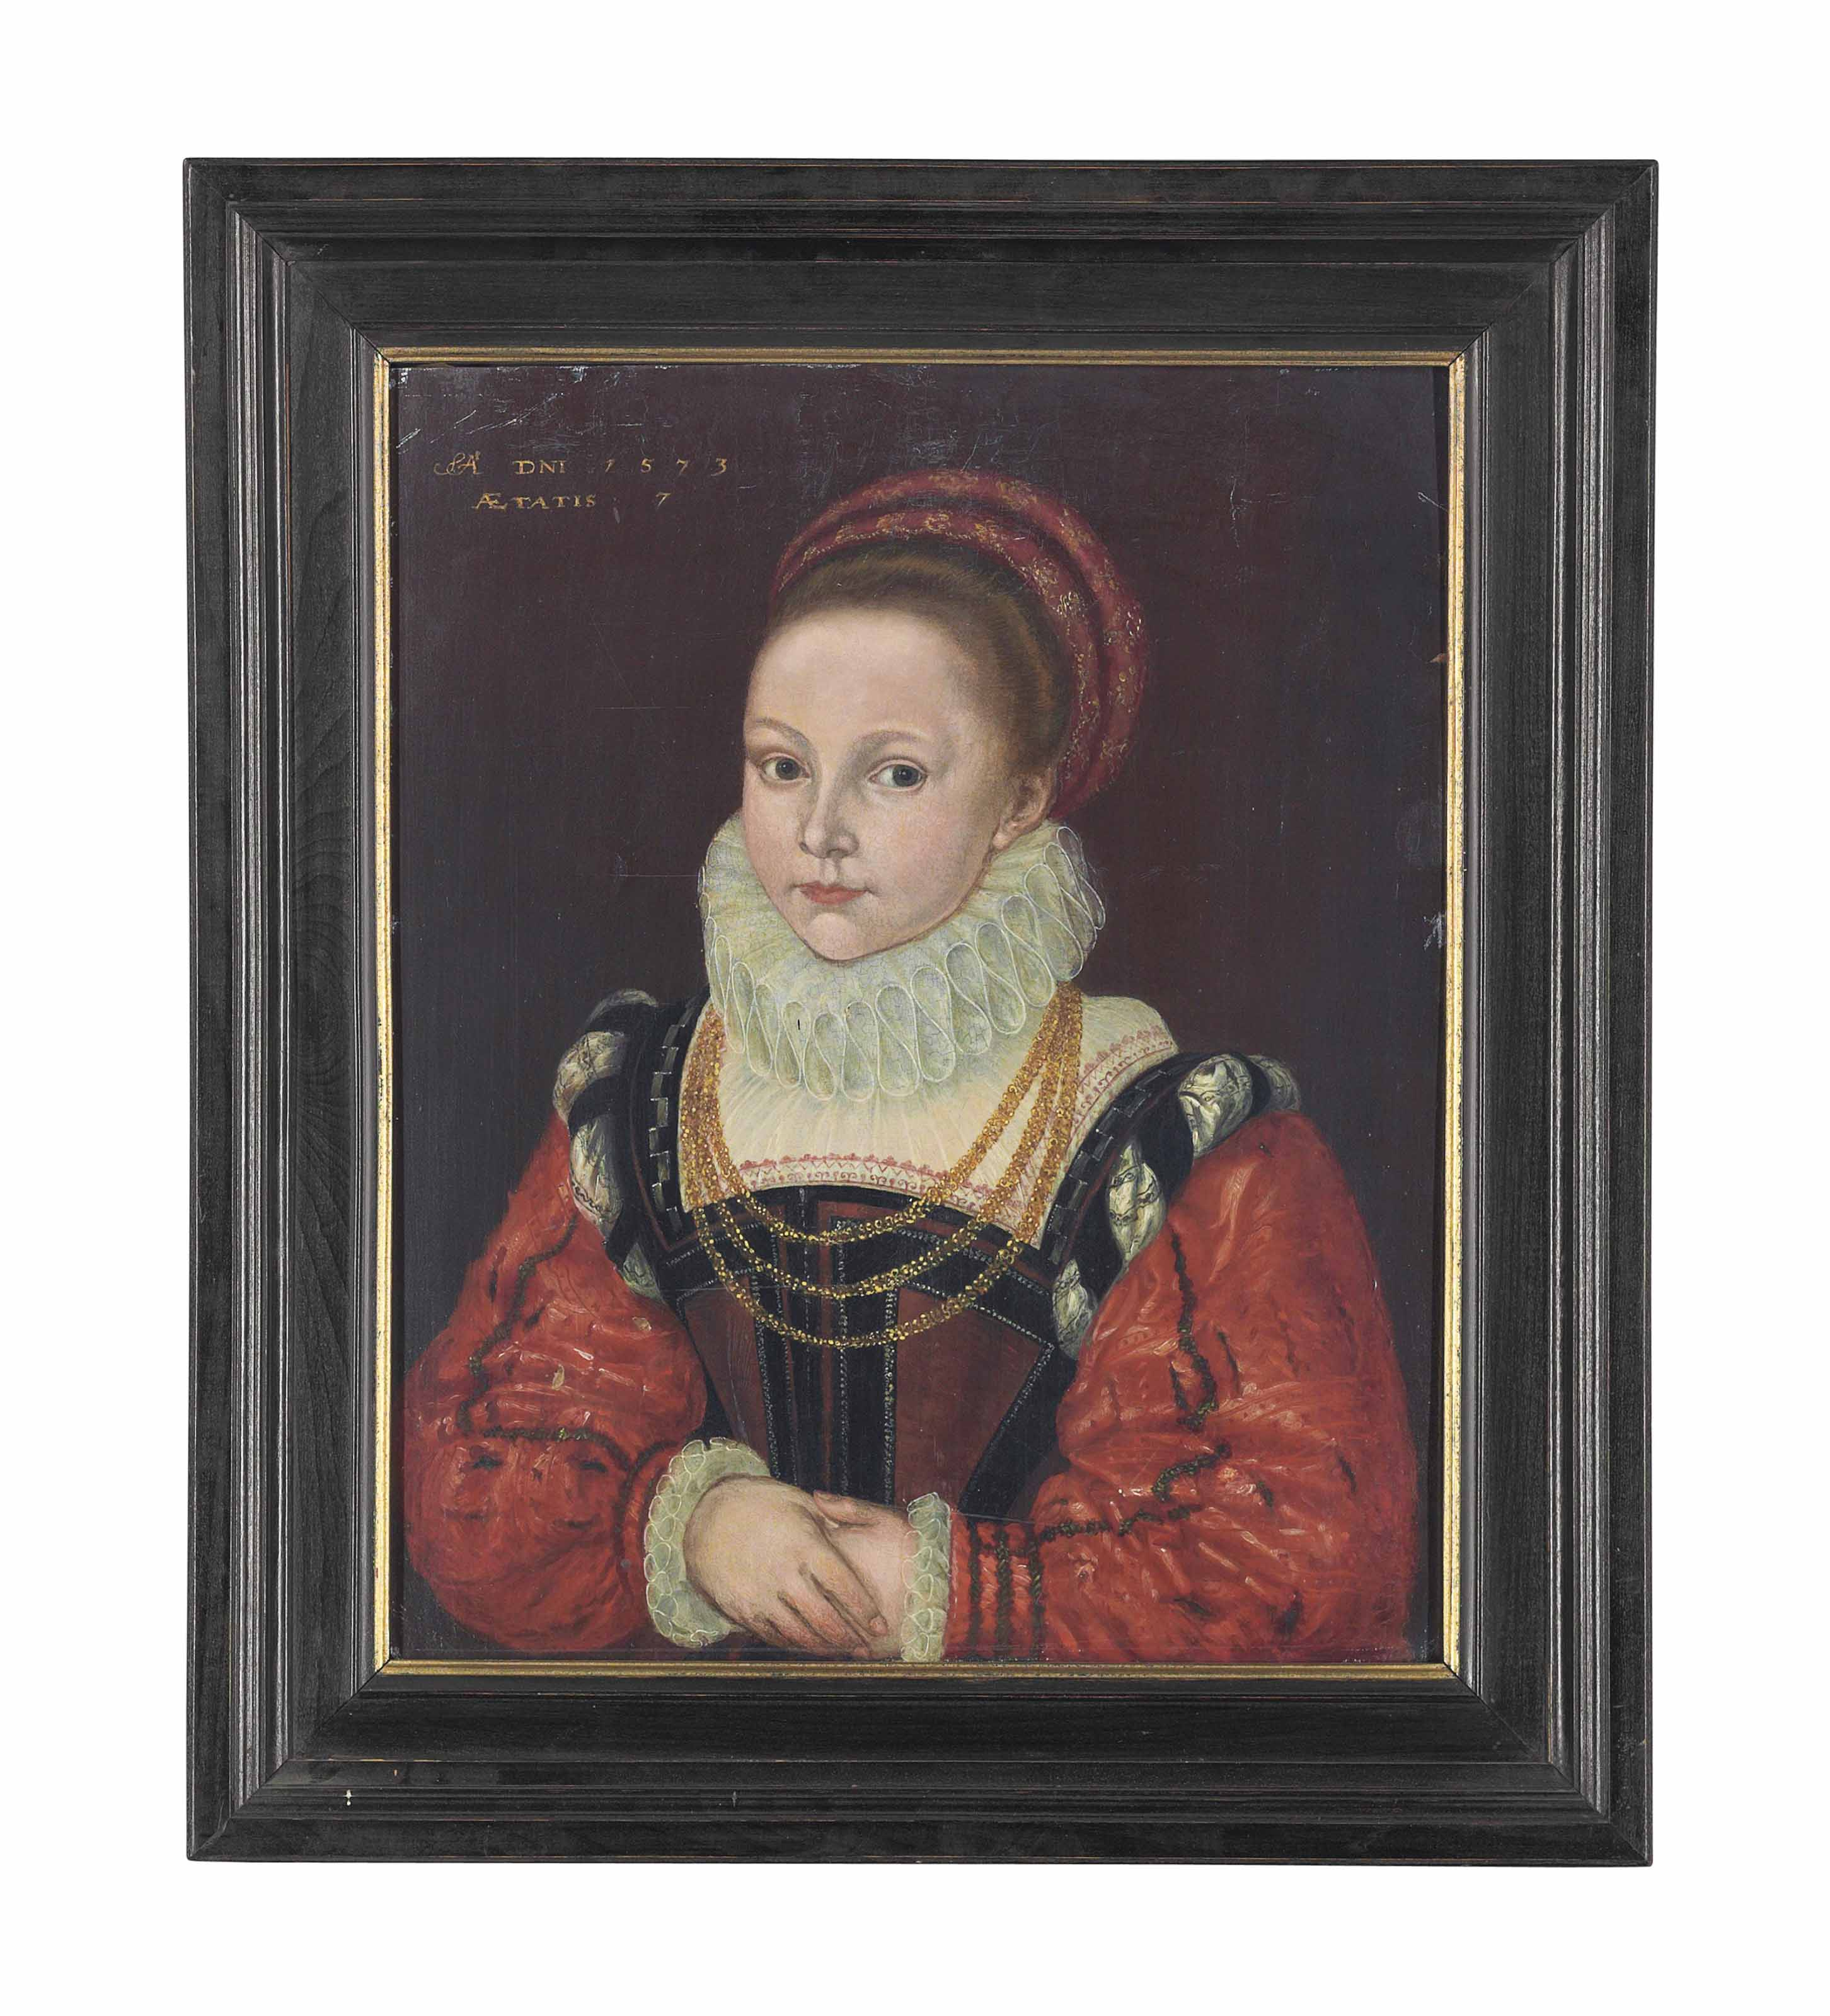 Portrait of Elizabeth Smythe, aged 7, half-length, in a brown and black dress with red sleeves, a ruff, a red headdress, and a gold chain